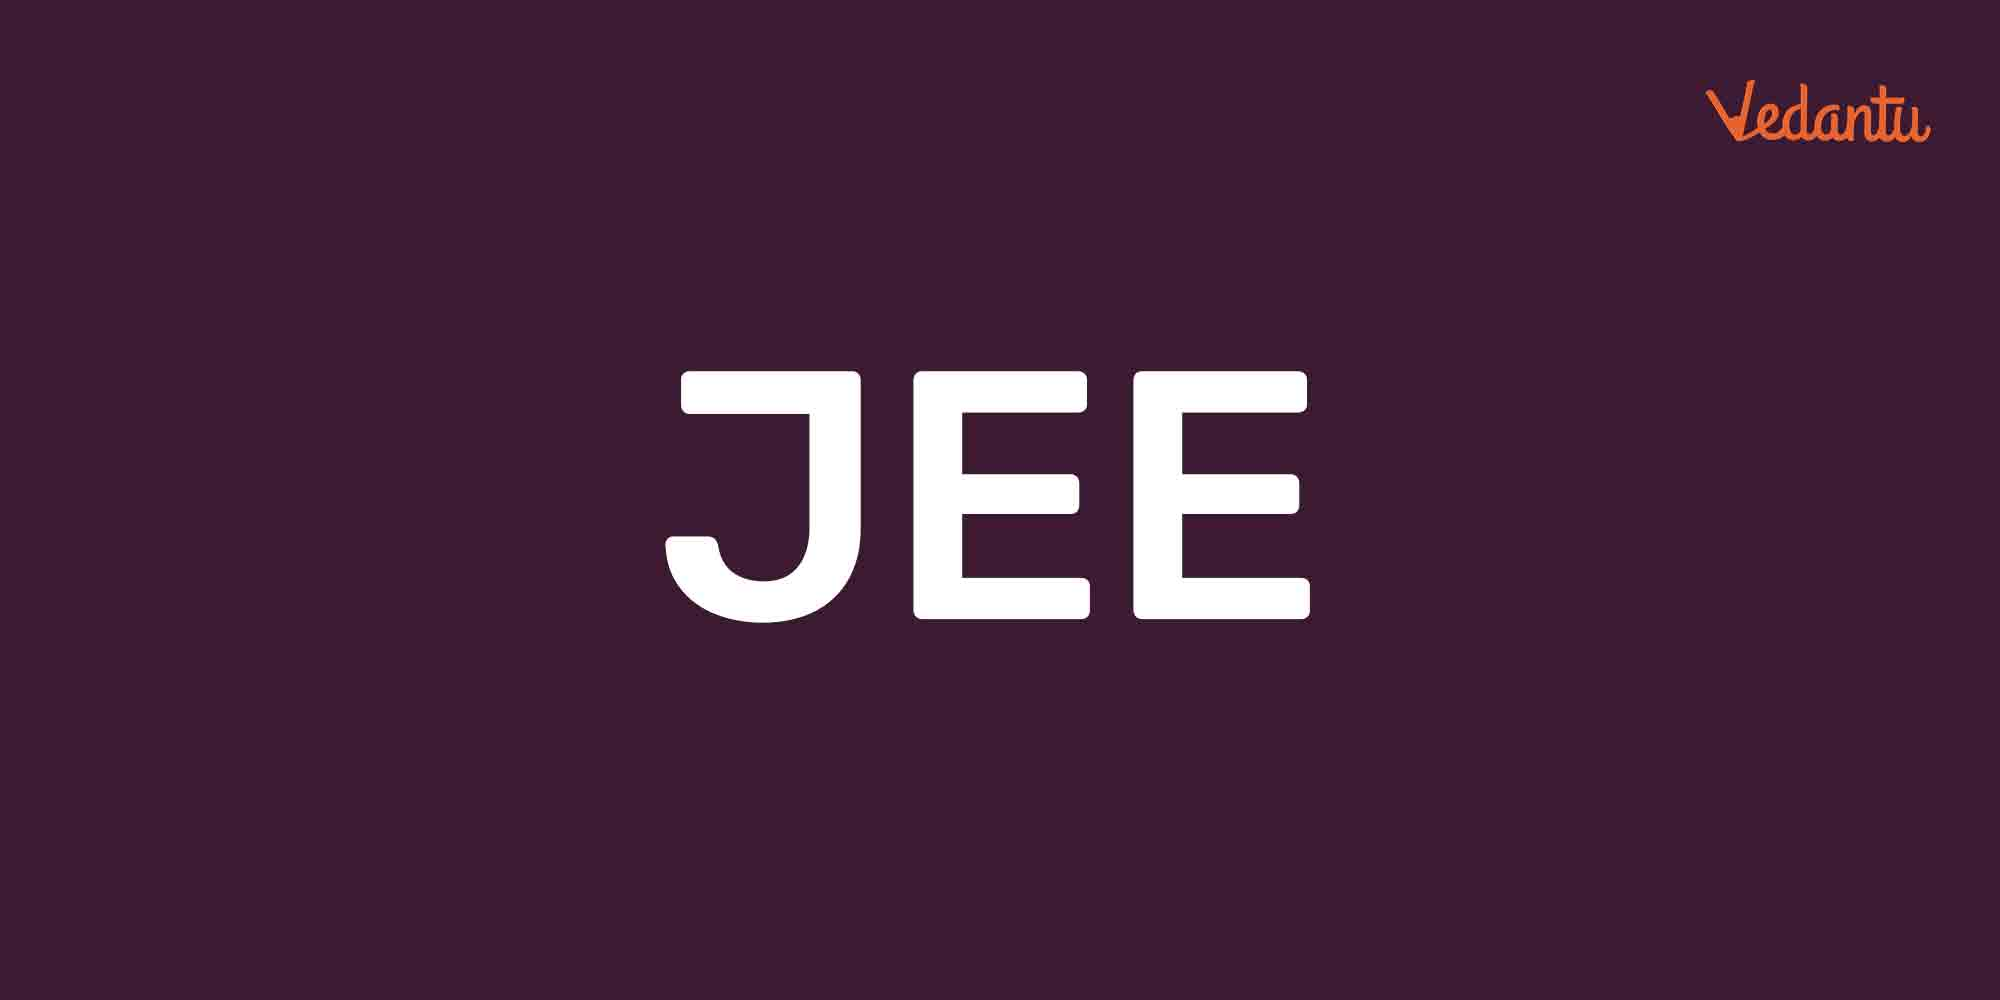 Should I Prepare for the JEE Mains and JEE Advanced Together or Focus on Either One of Them?